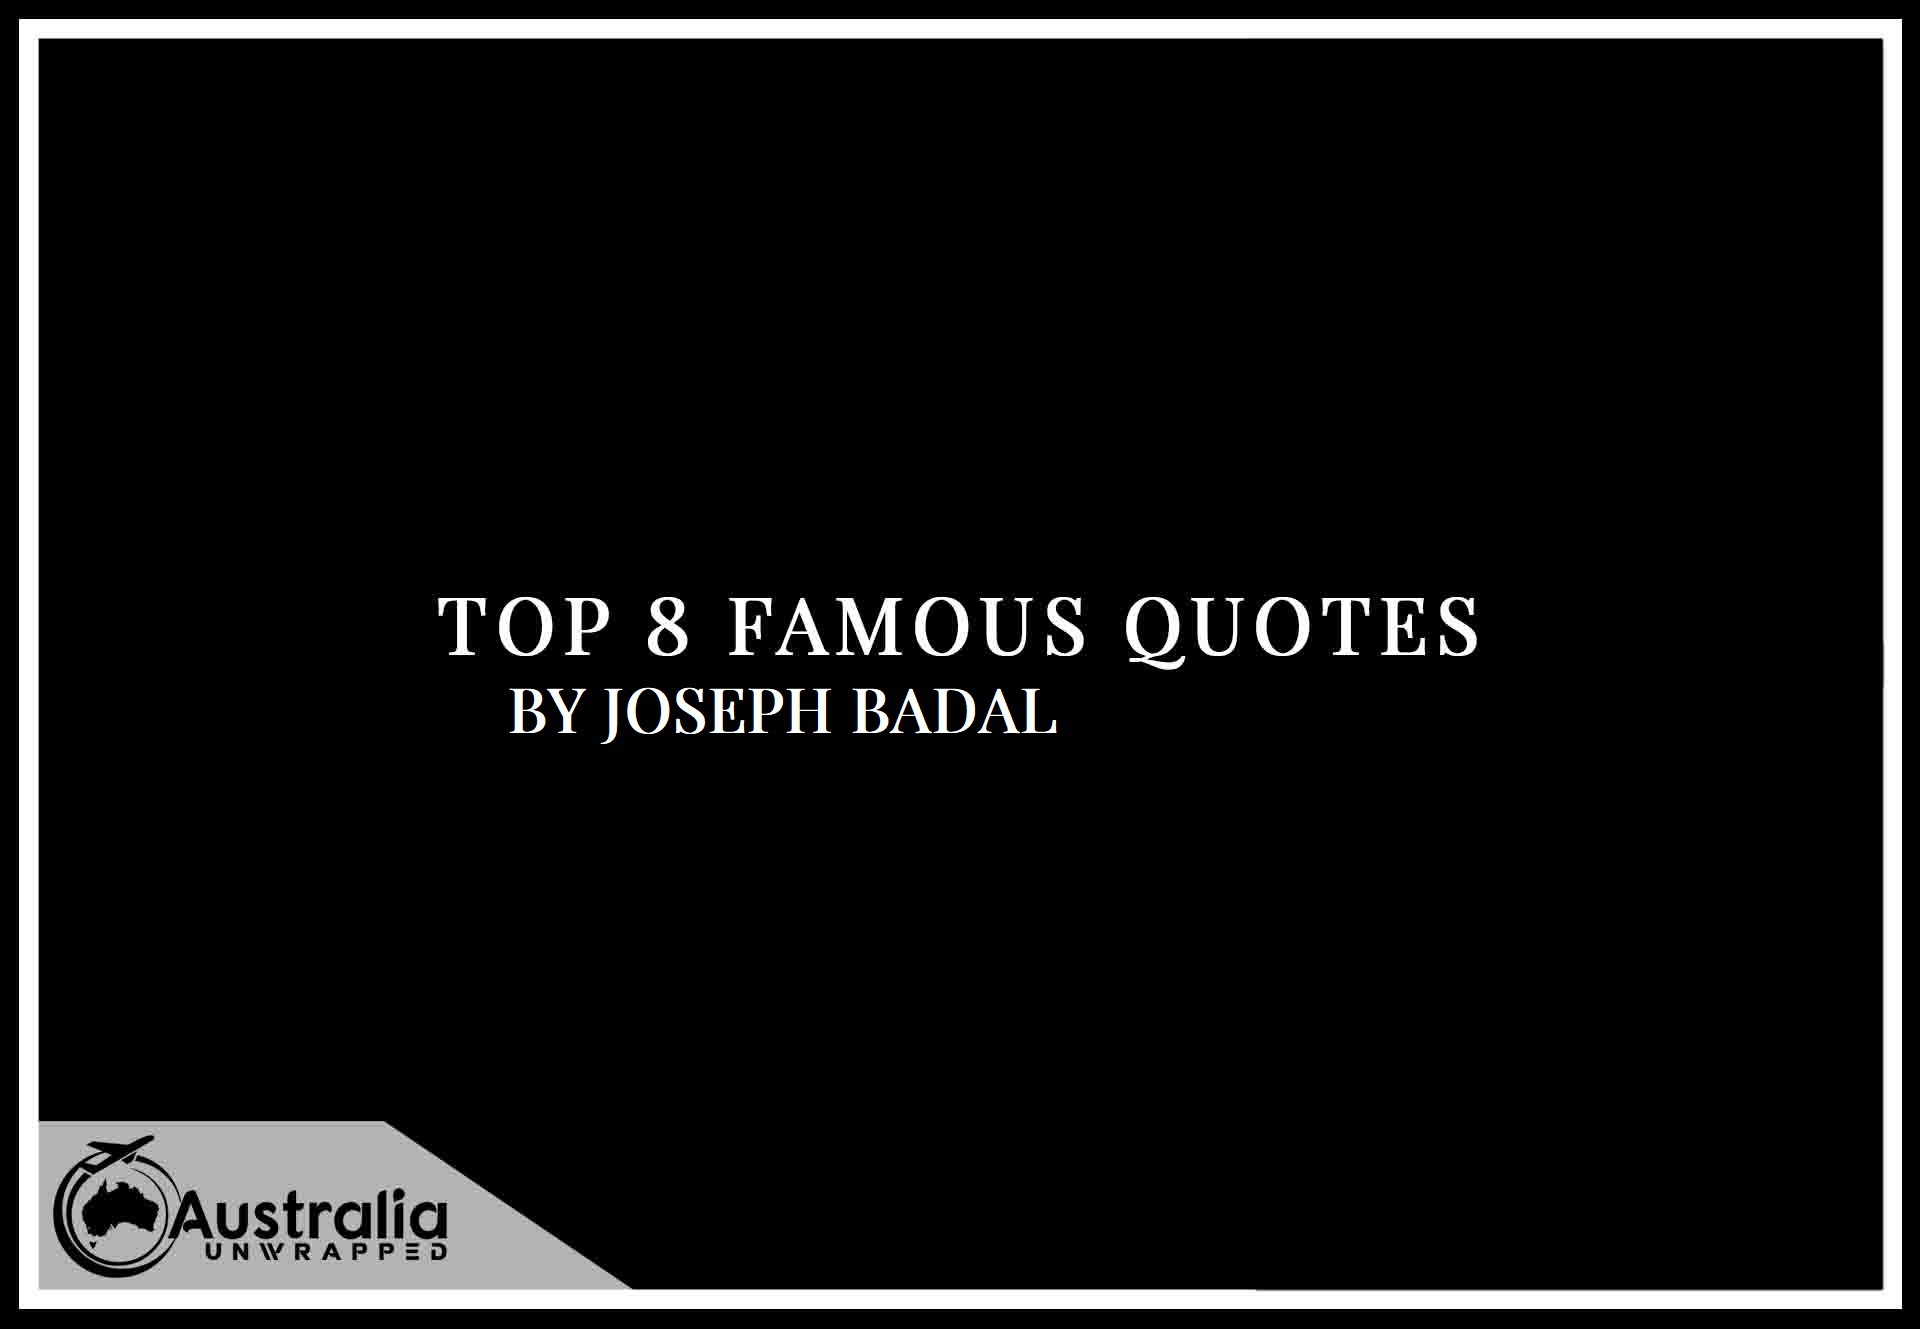 Top 8 Famous Quotes by Author Joseph Badal